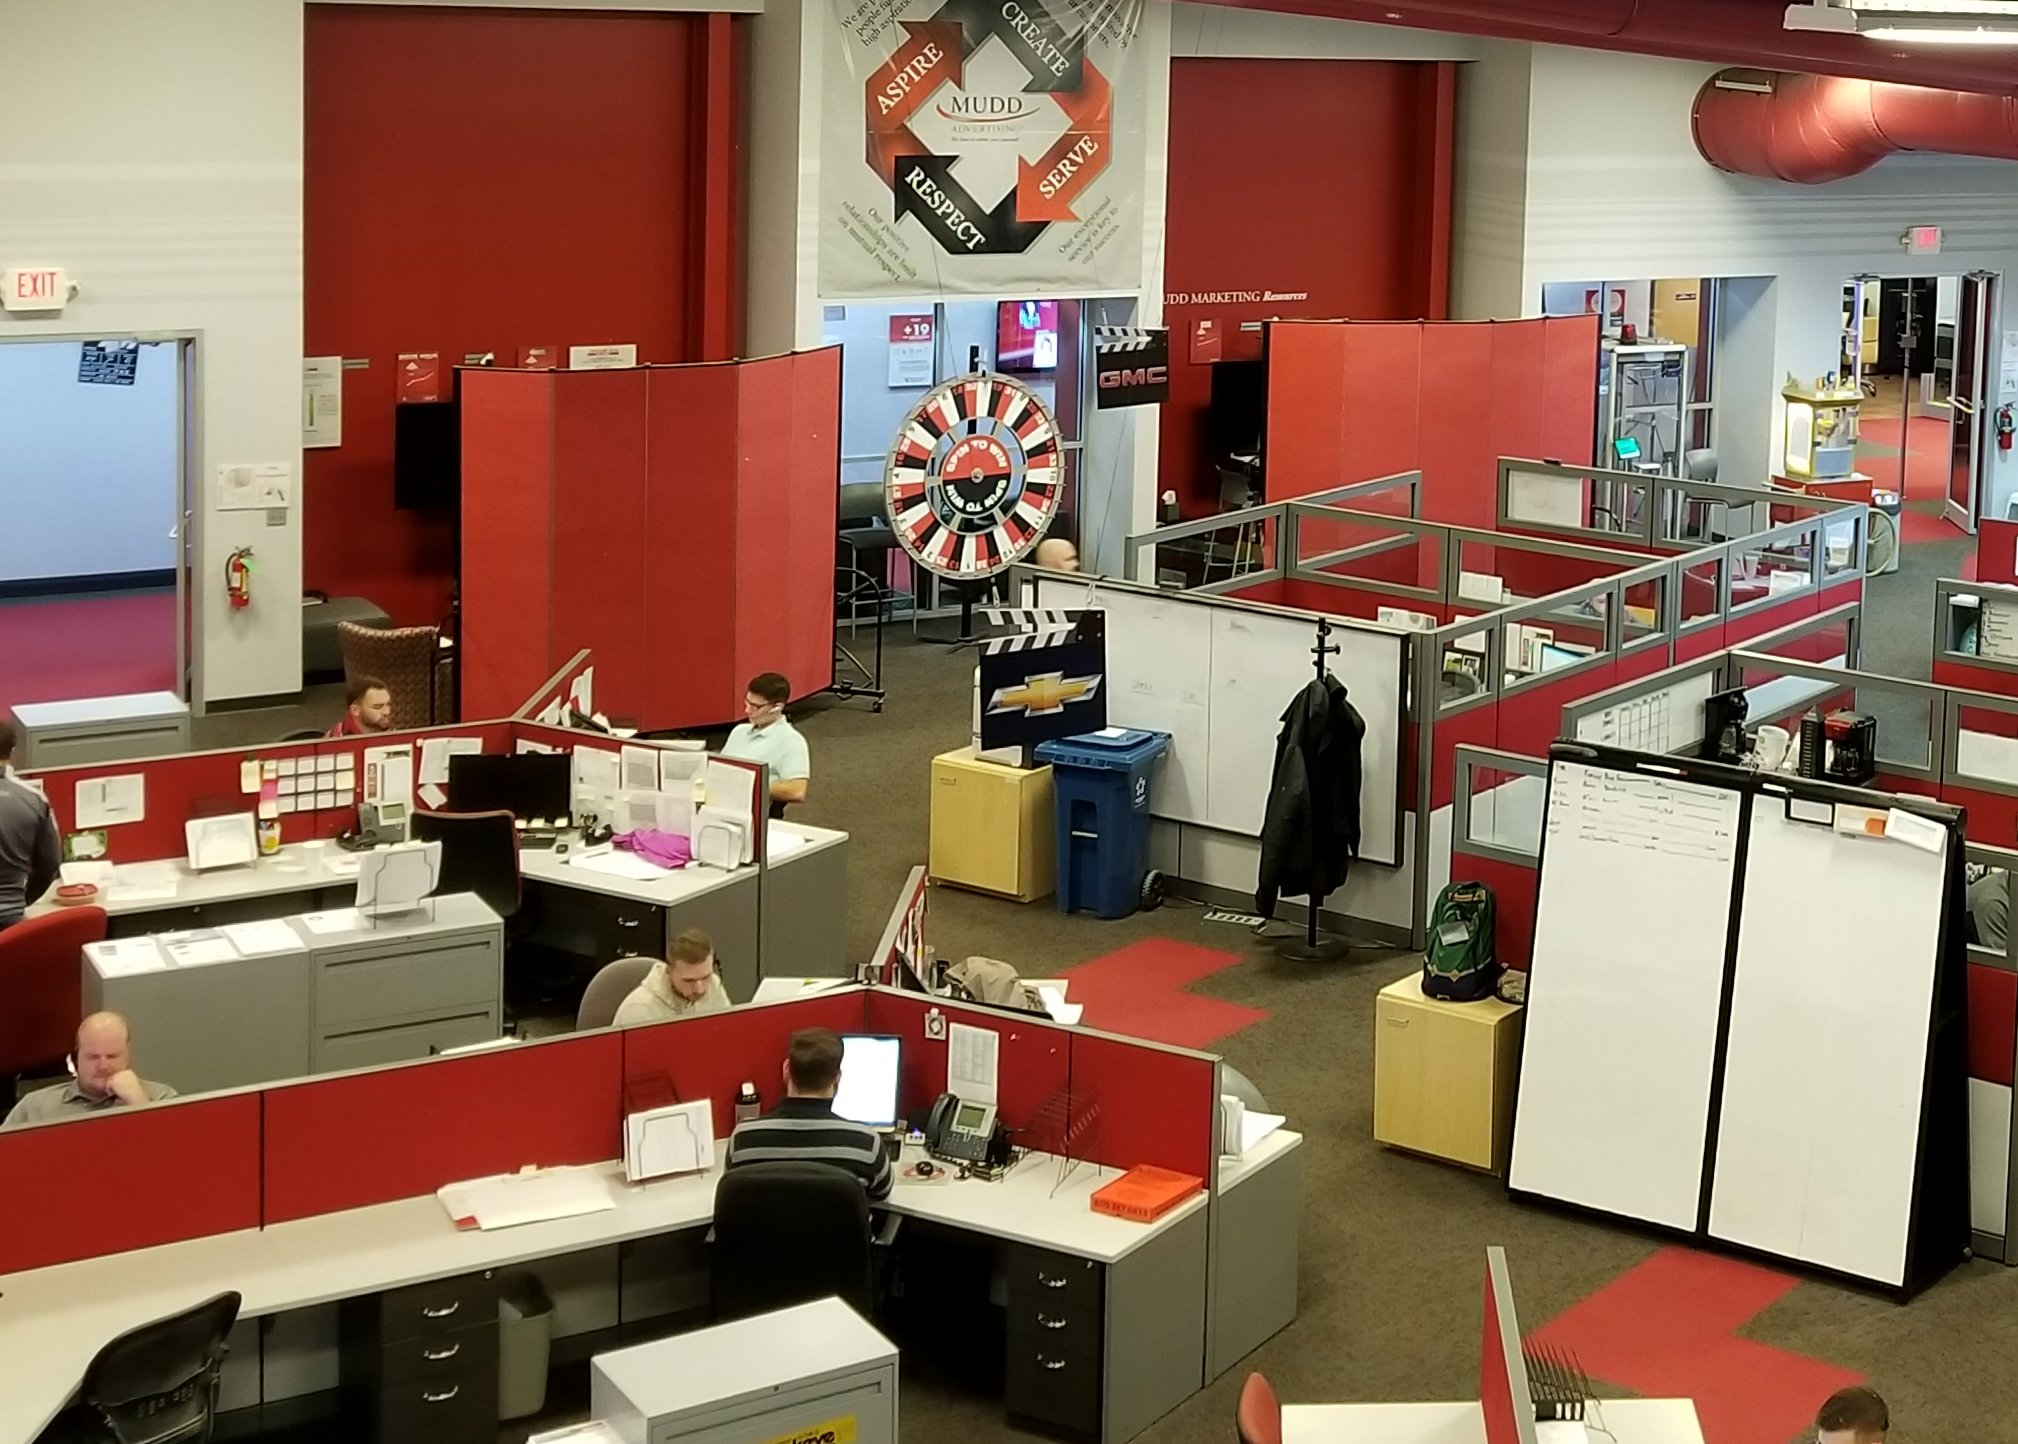 A set of red dividers provide private meeting space in a crowded open office space